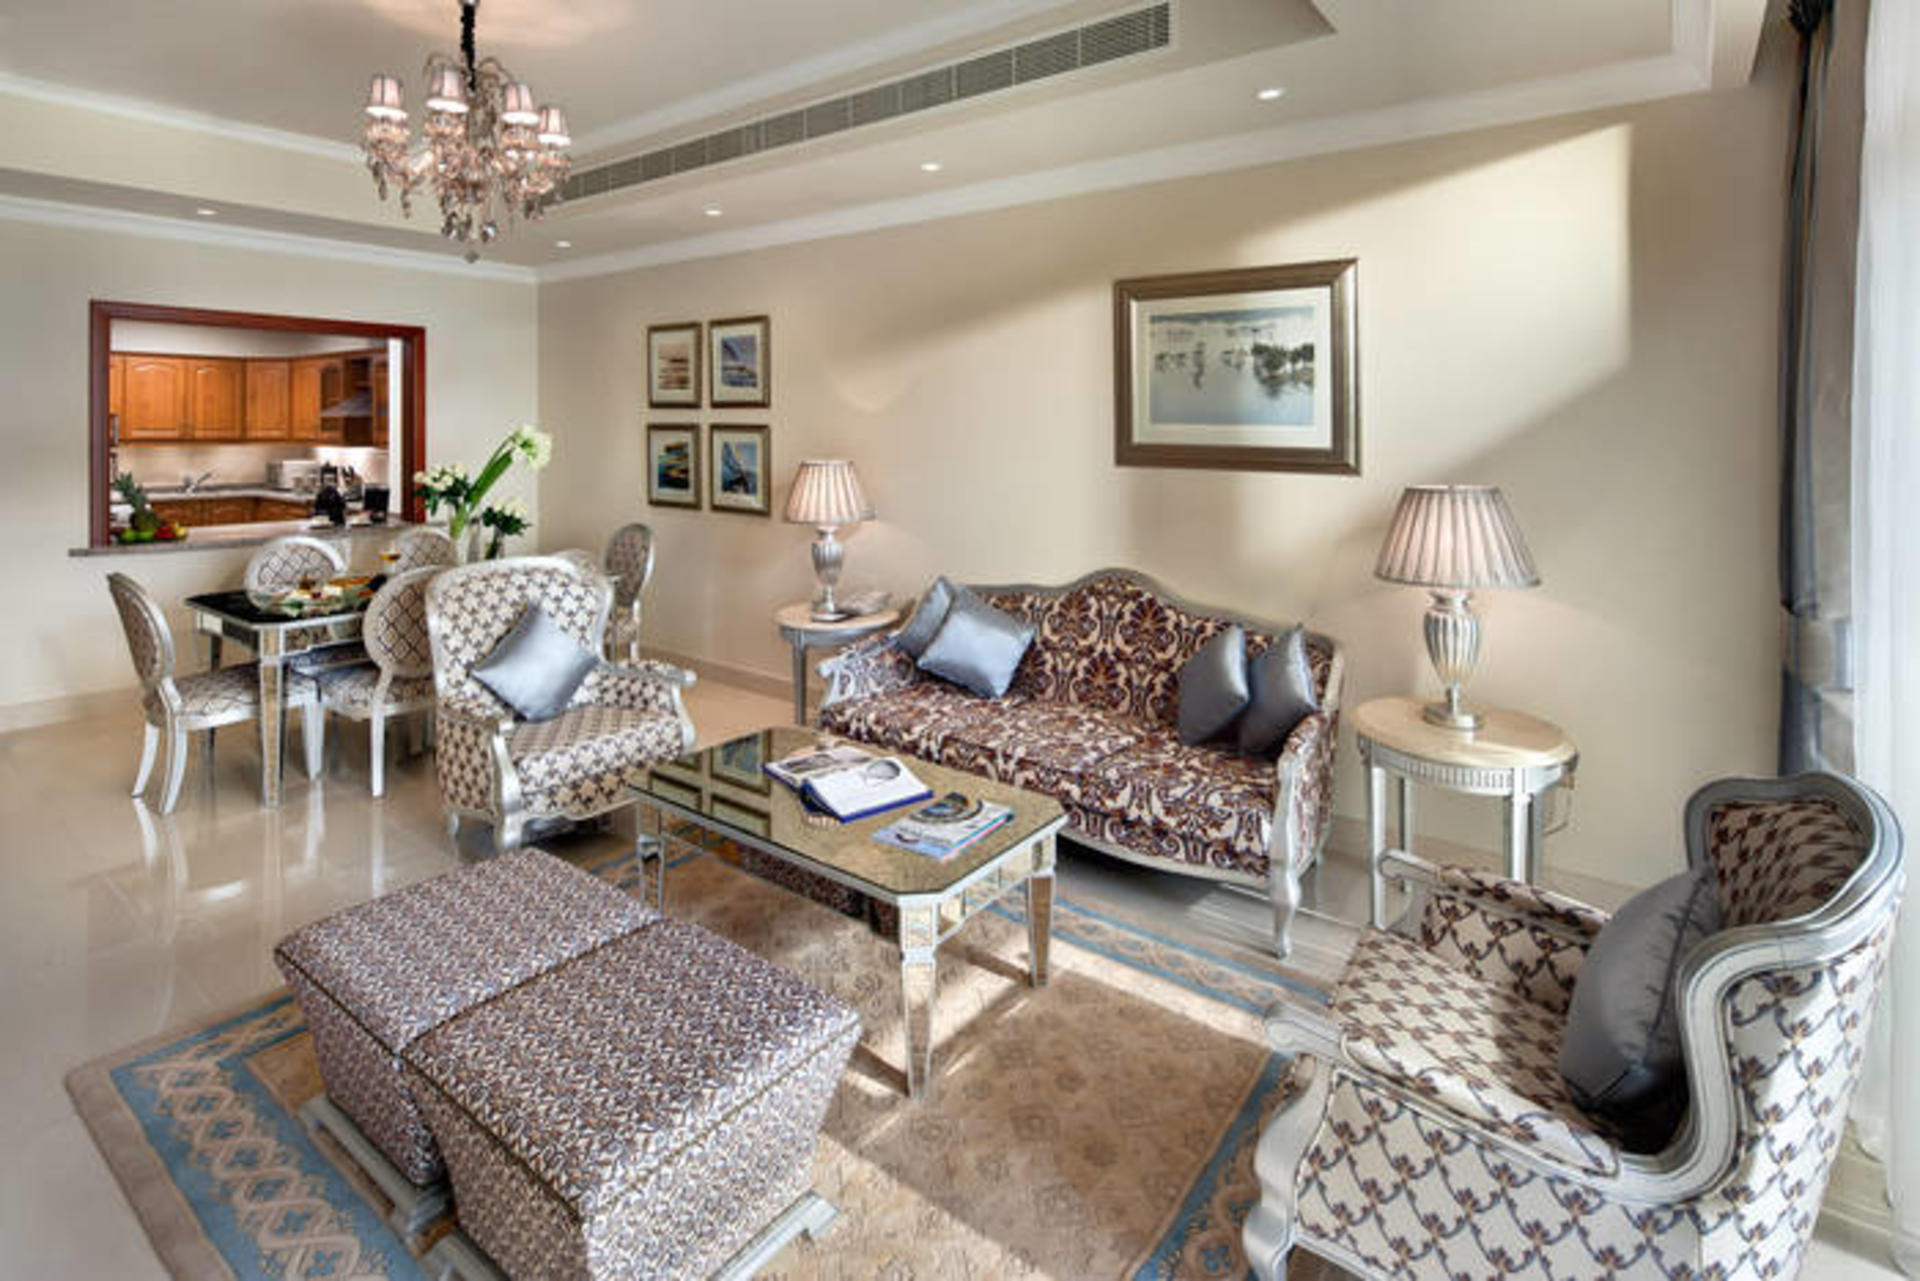 KempinskiPalmJumeirah_Superior-1-Bedroom-Suite